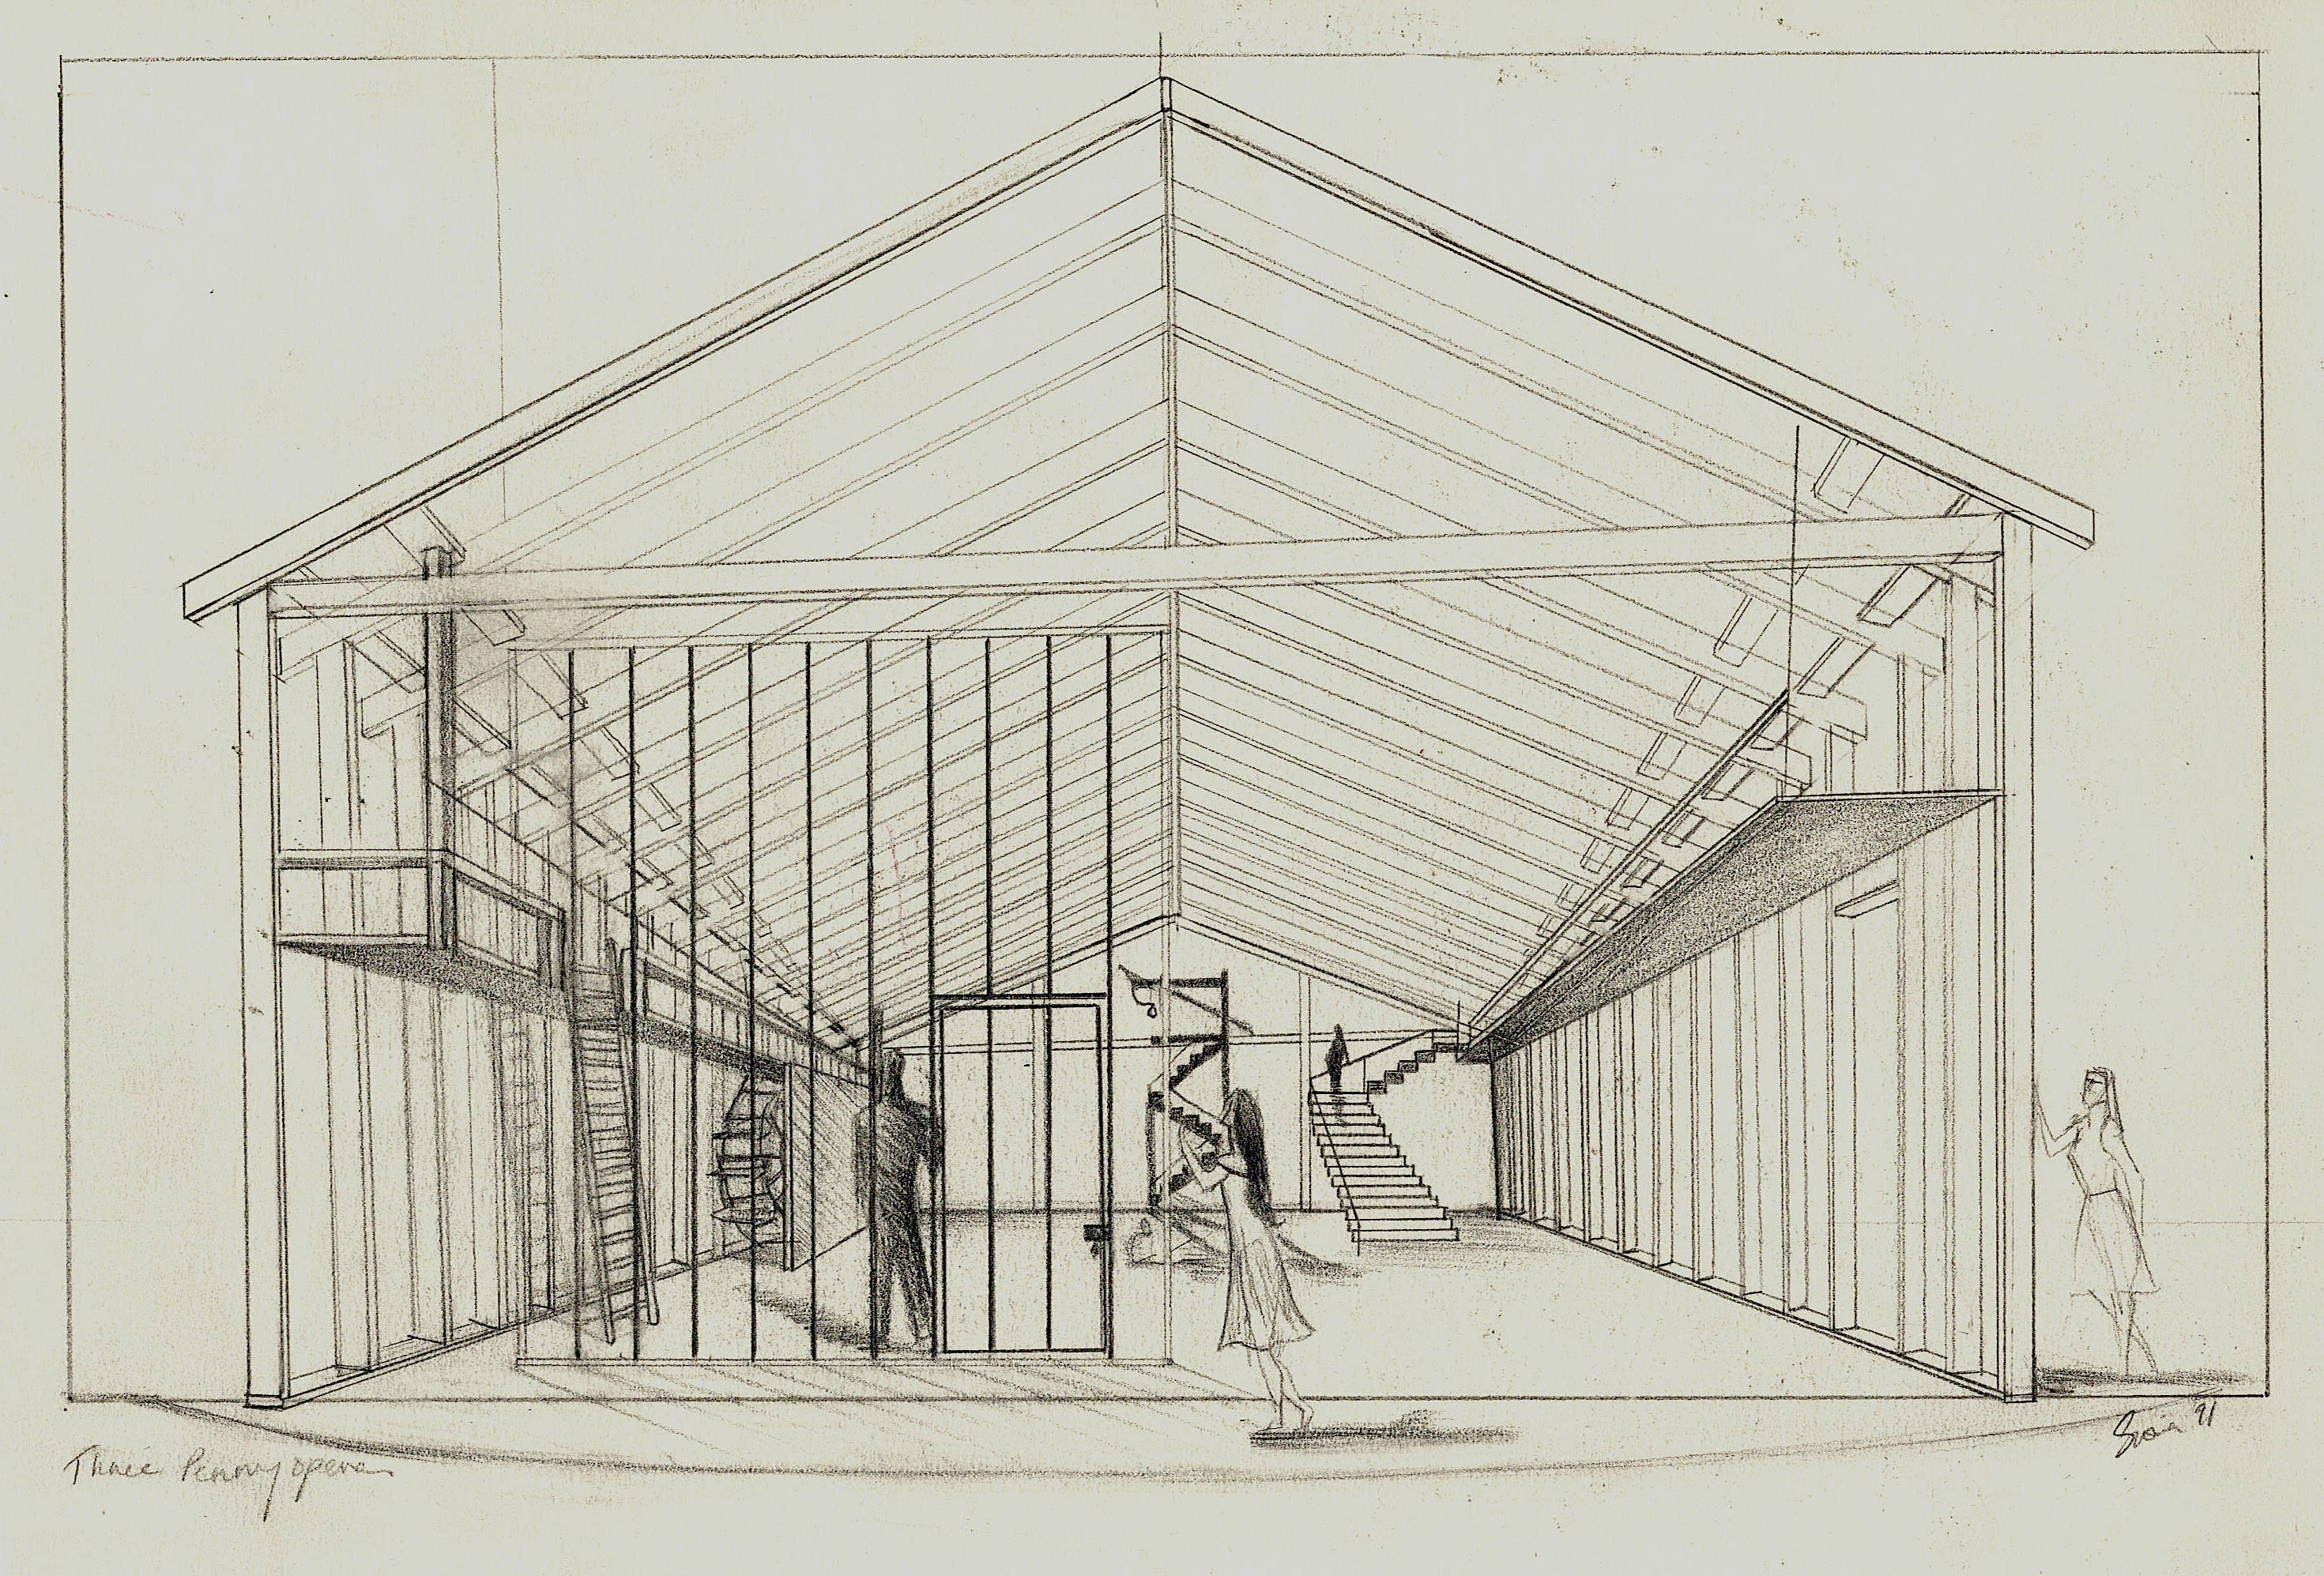 The Three Penny Opera by BertoltBrecht - Model and Set design sketch